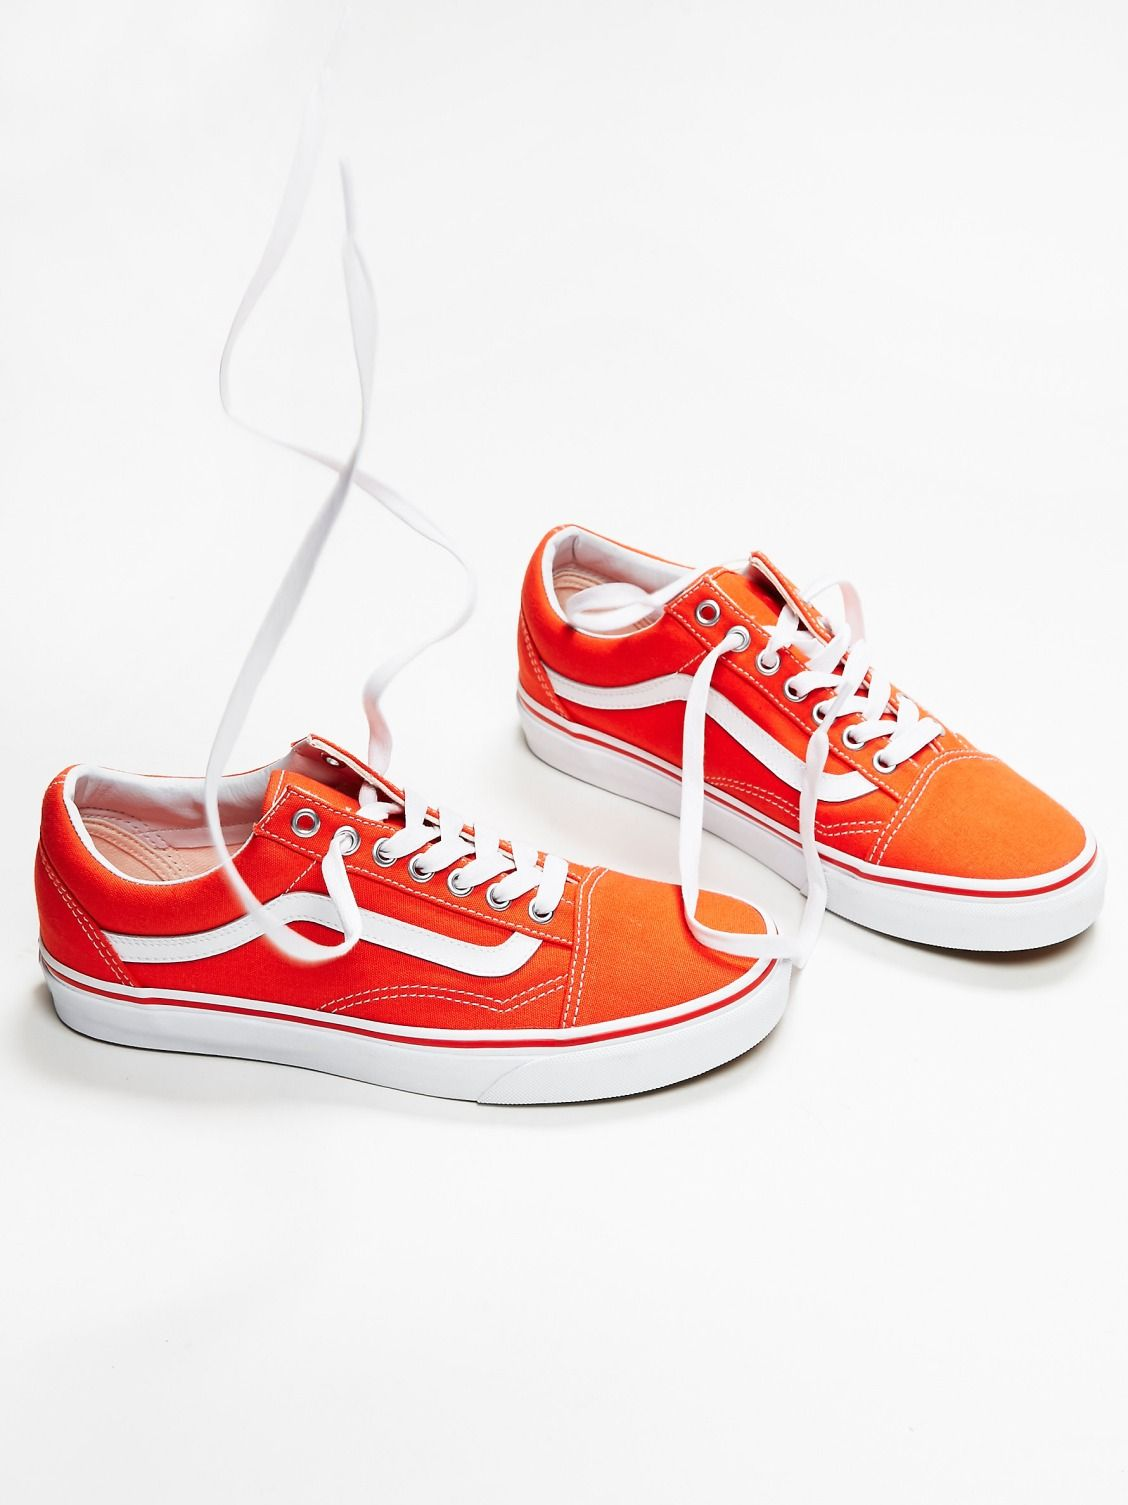 Vans Cherry Tomato Old Skool Canvas Sneaker at Free People Clothing Boutique e4577a87569ba